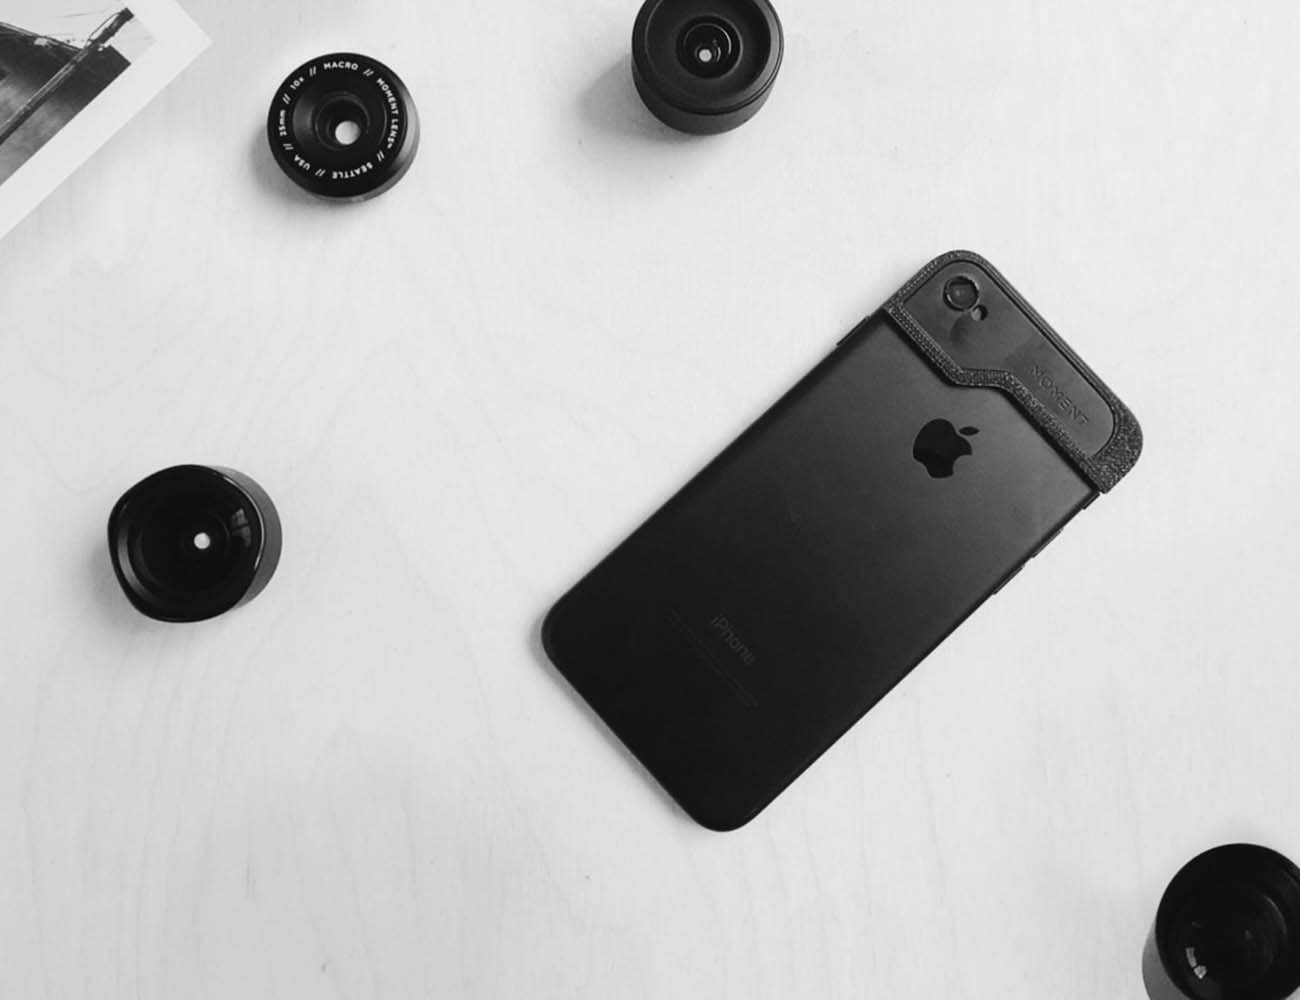 Turnikit – iPhone lens adapter for iPhone 6 & 6 plus